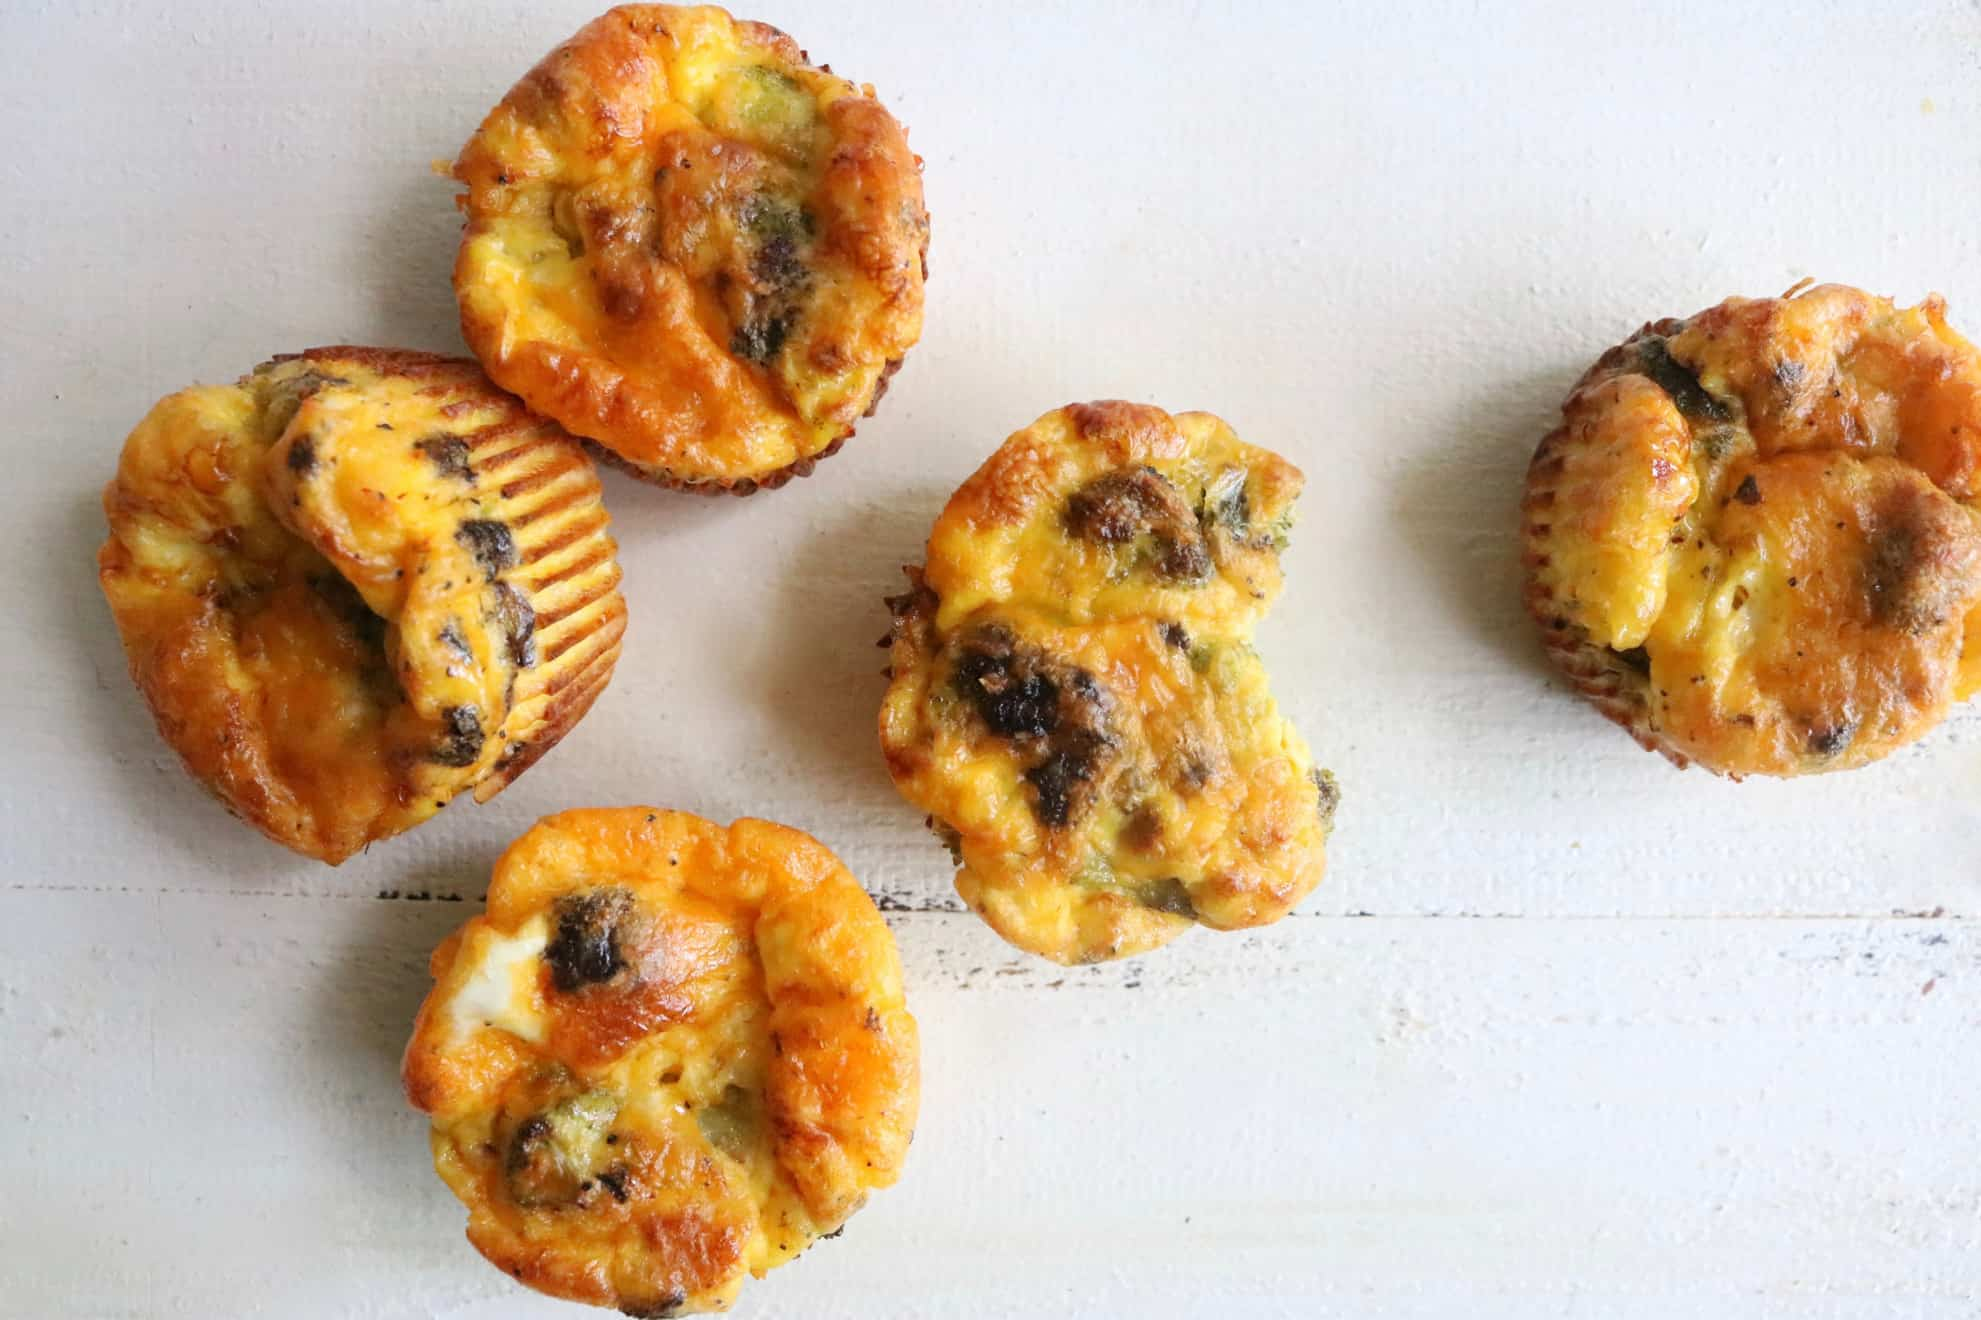 Broccoli Cheddar Egg Muffins